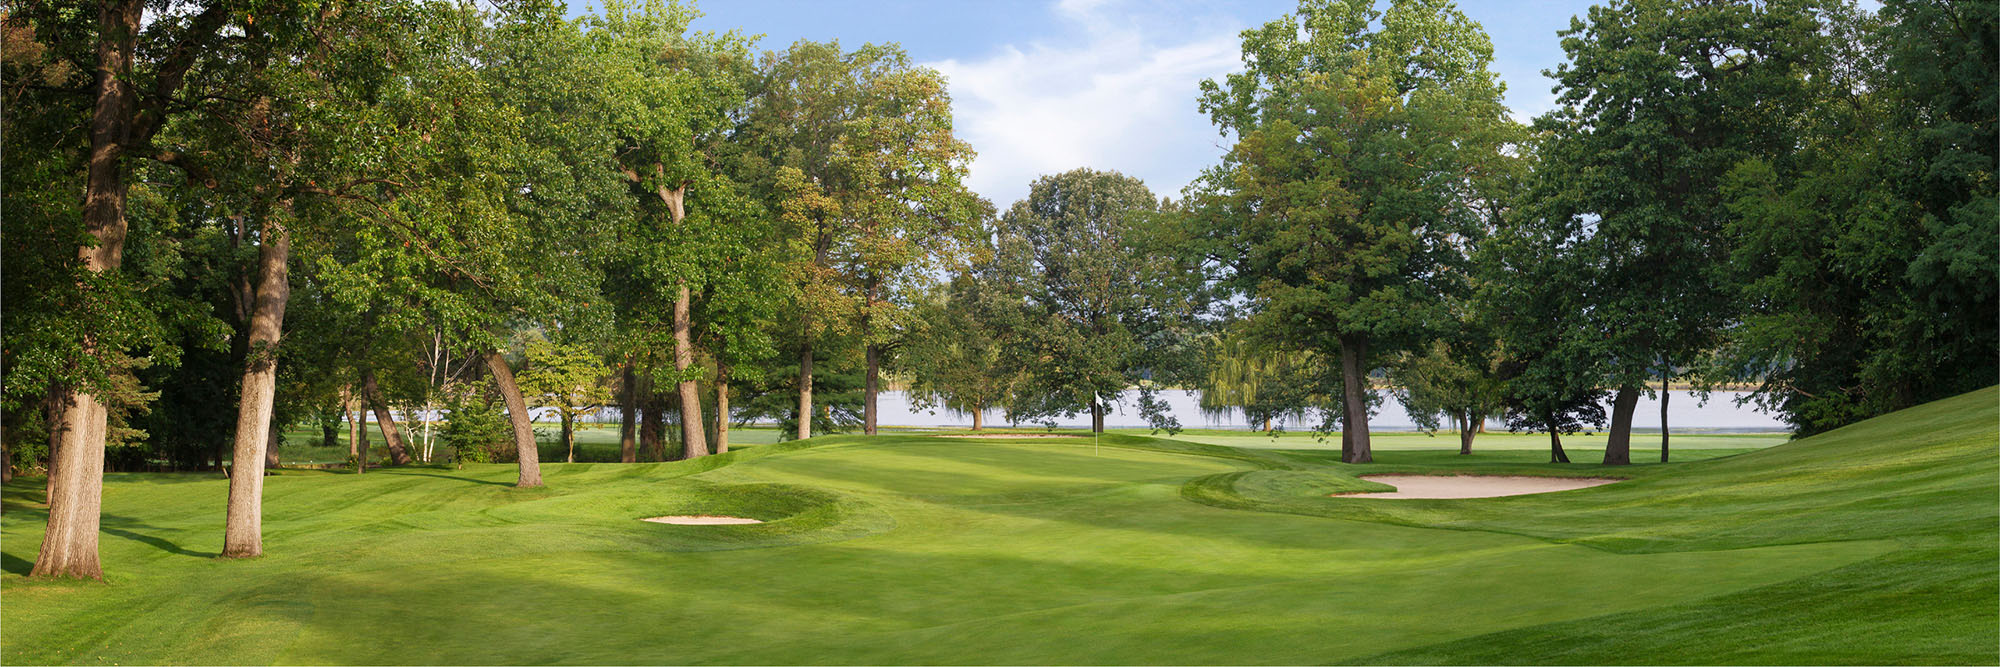 Golf Course Image - South Bend No. 10